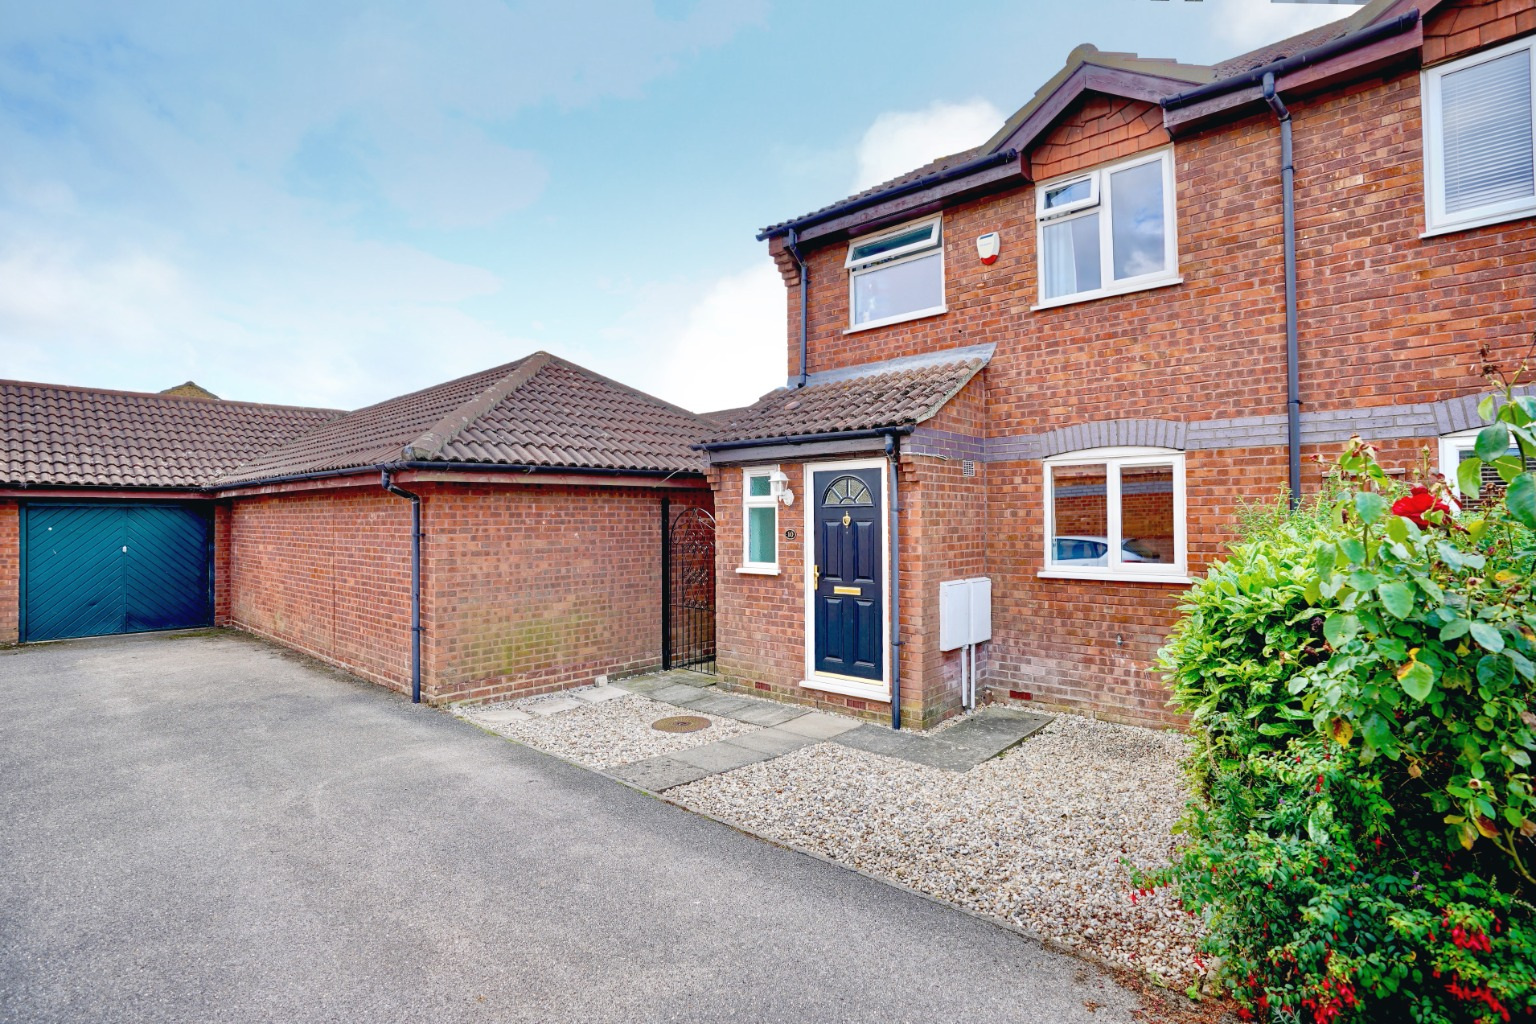 3 bed semi-detached house for sale in Carisbrooke Way, St. Neots  - Property Image 1